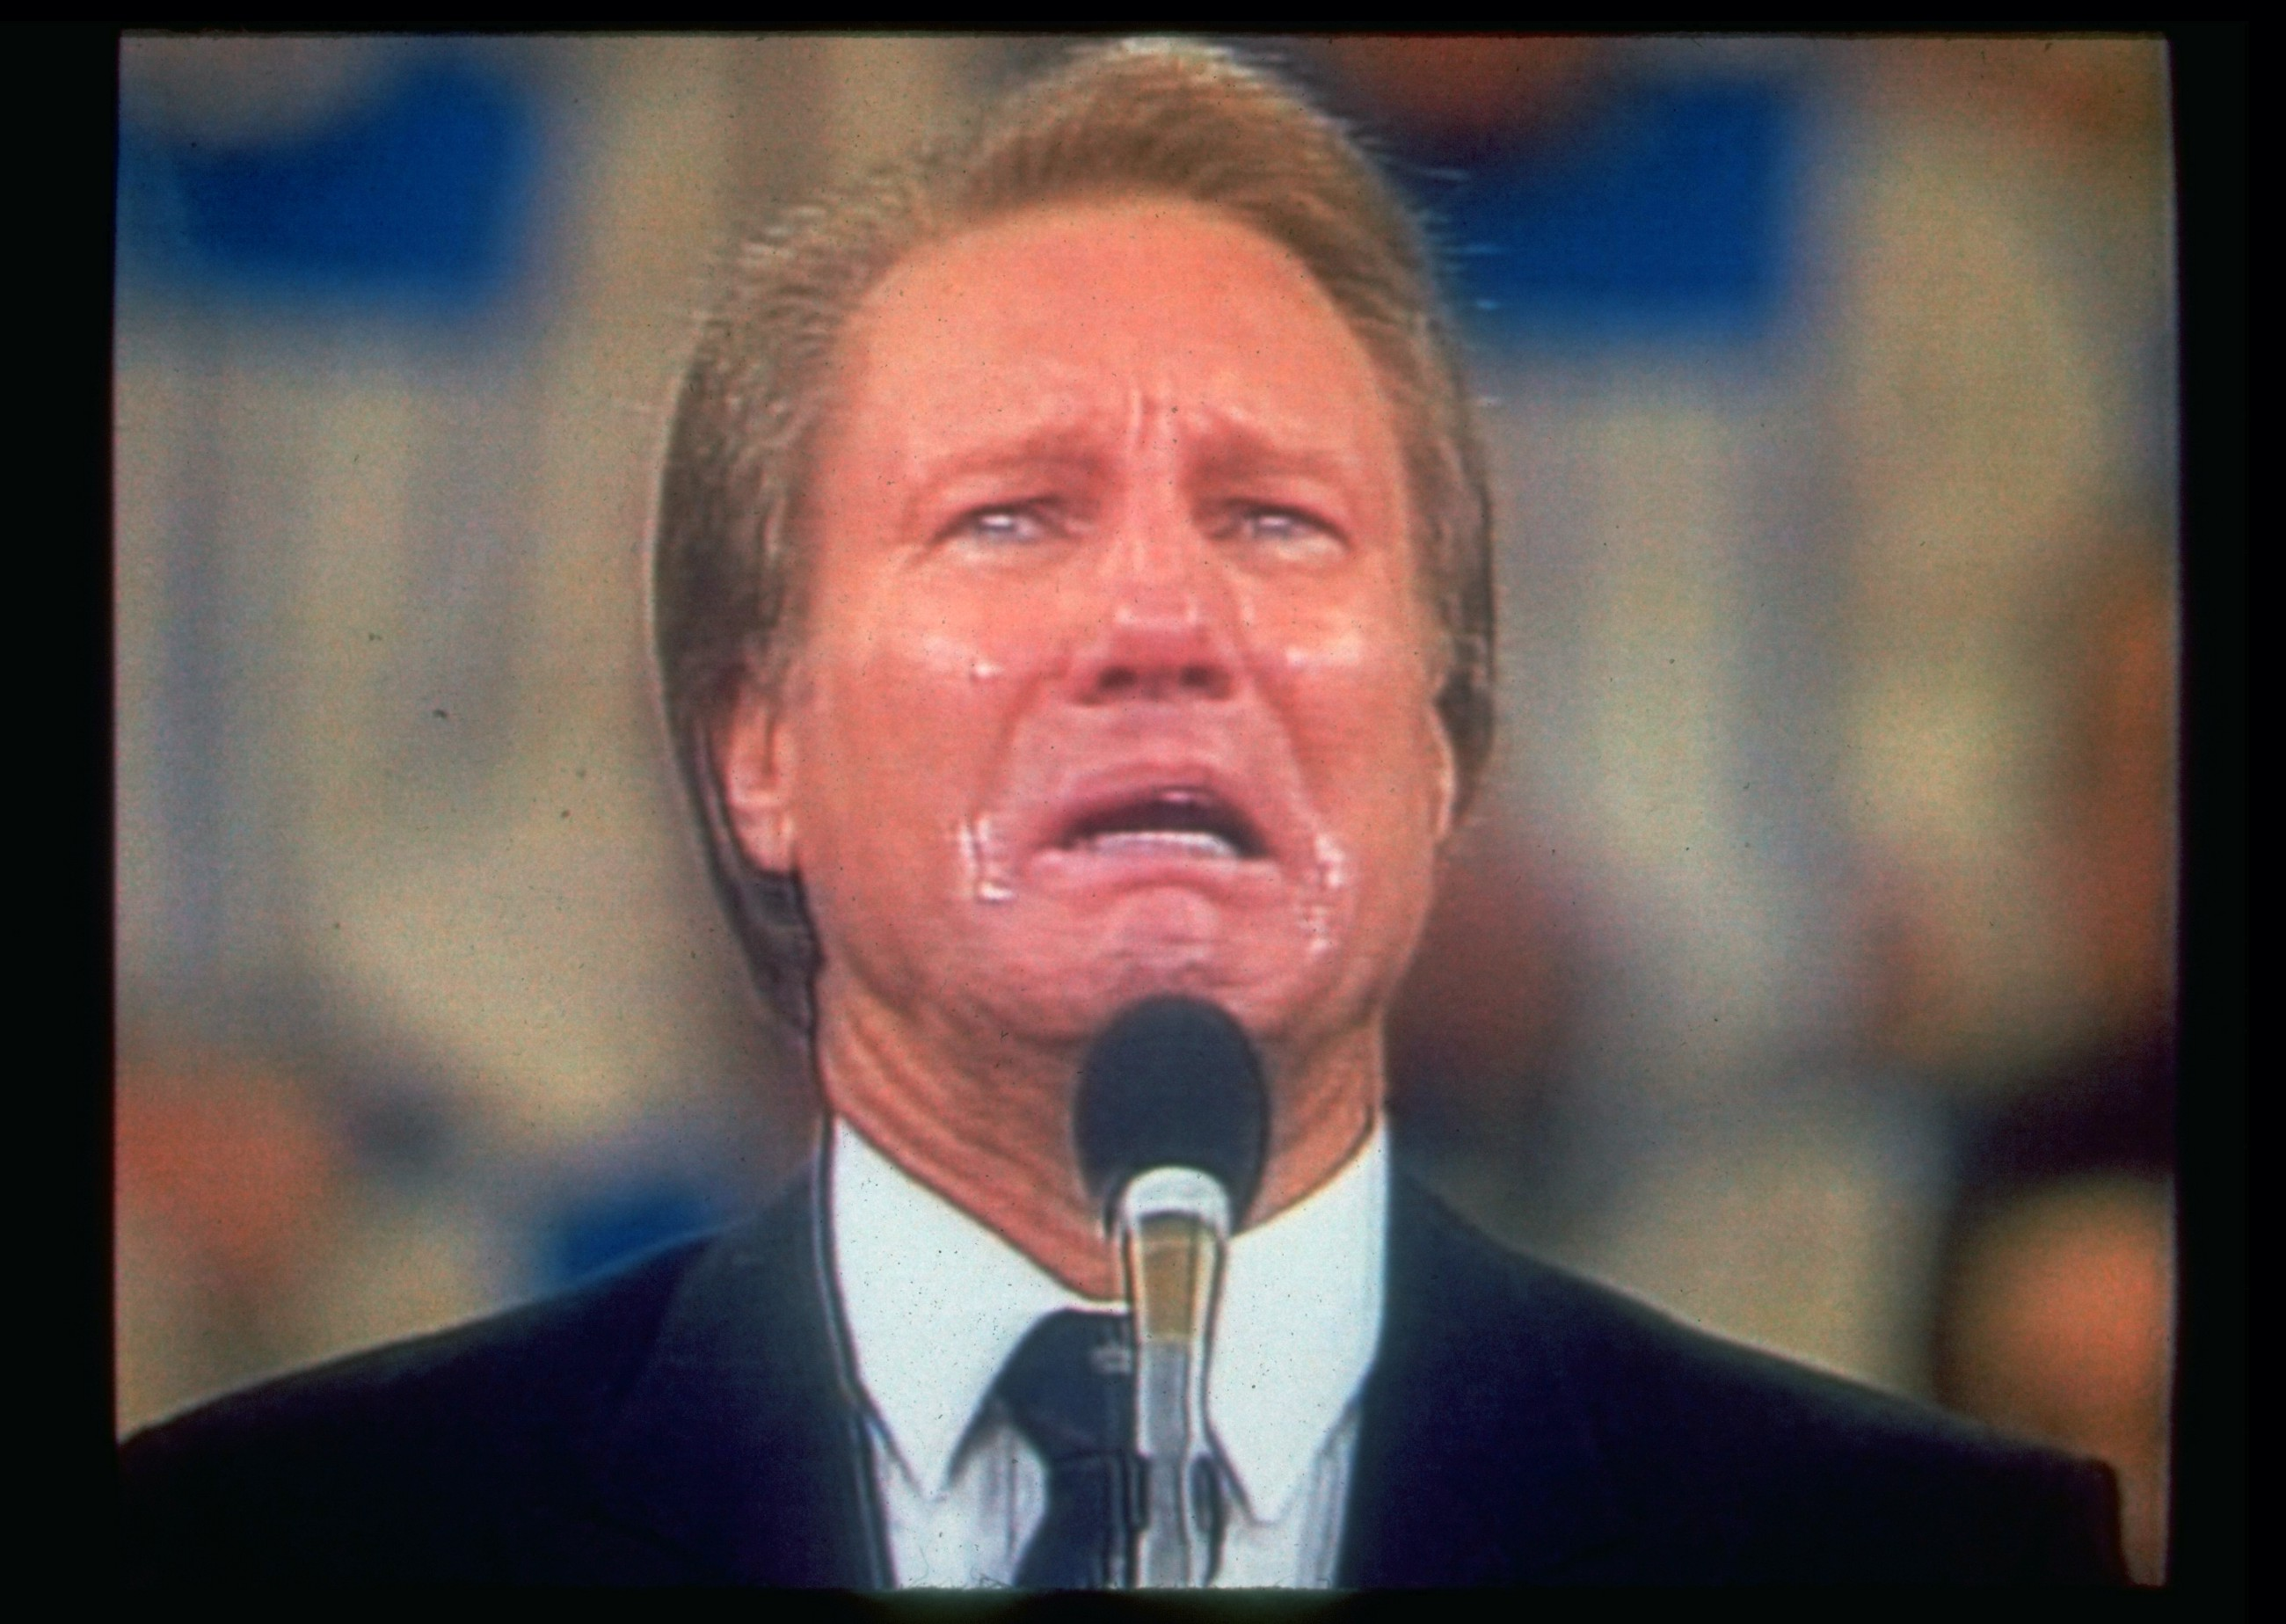 This Televangelist Cried In Front Of 8000 People After Being Caught